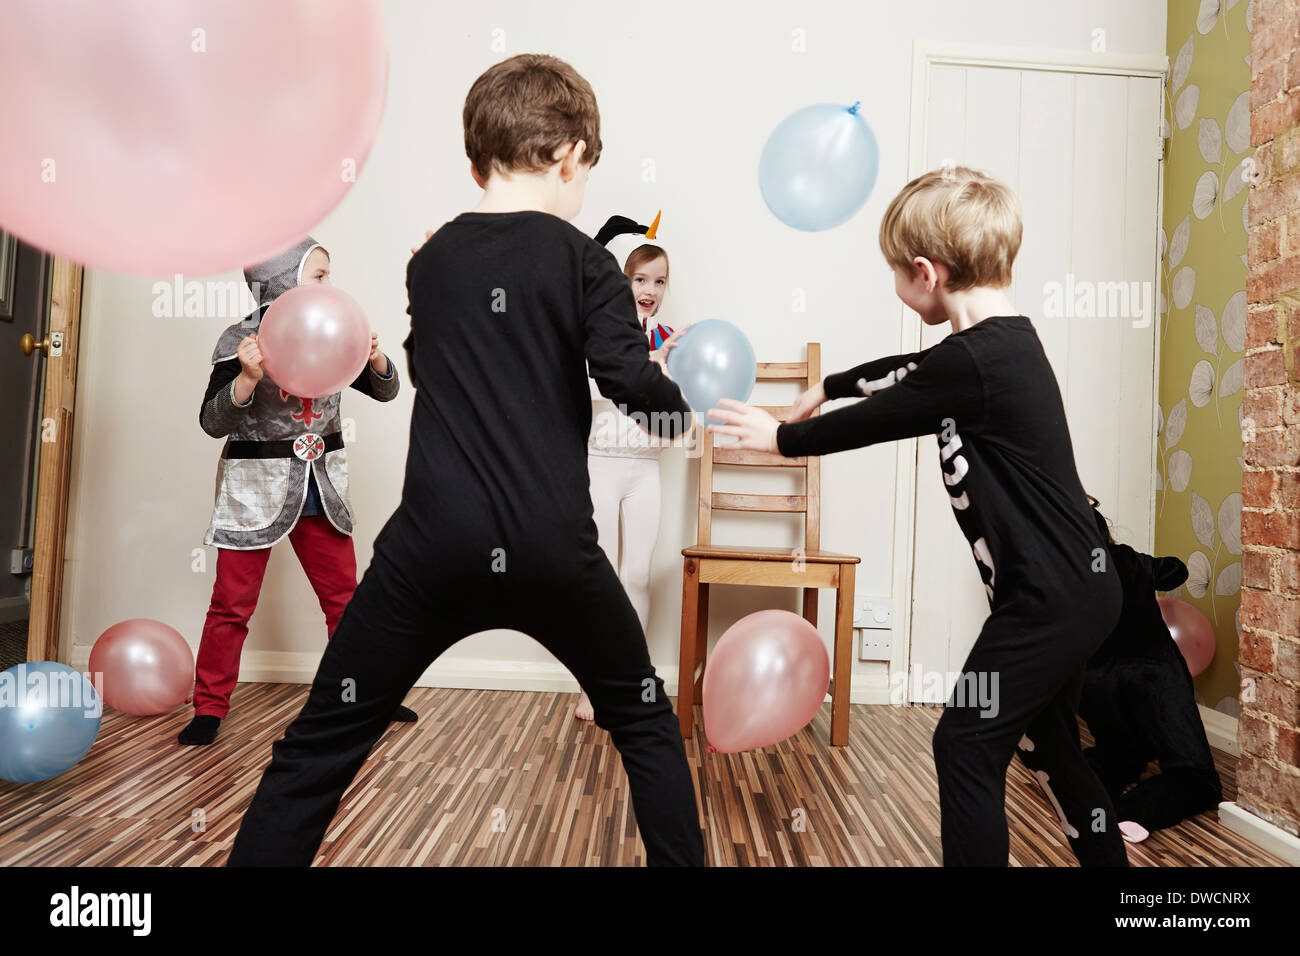 Children playing with balloons at birthday party Stock Photo